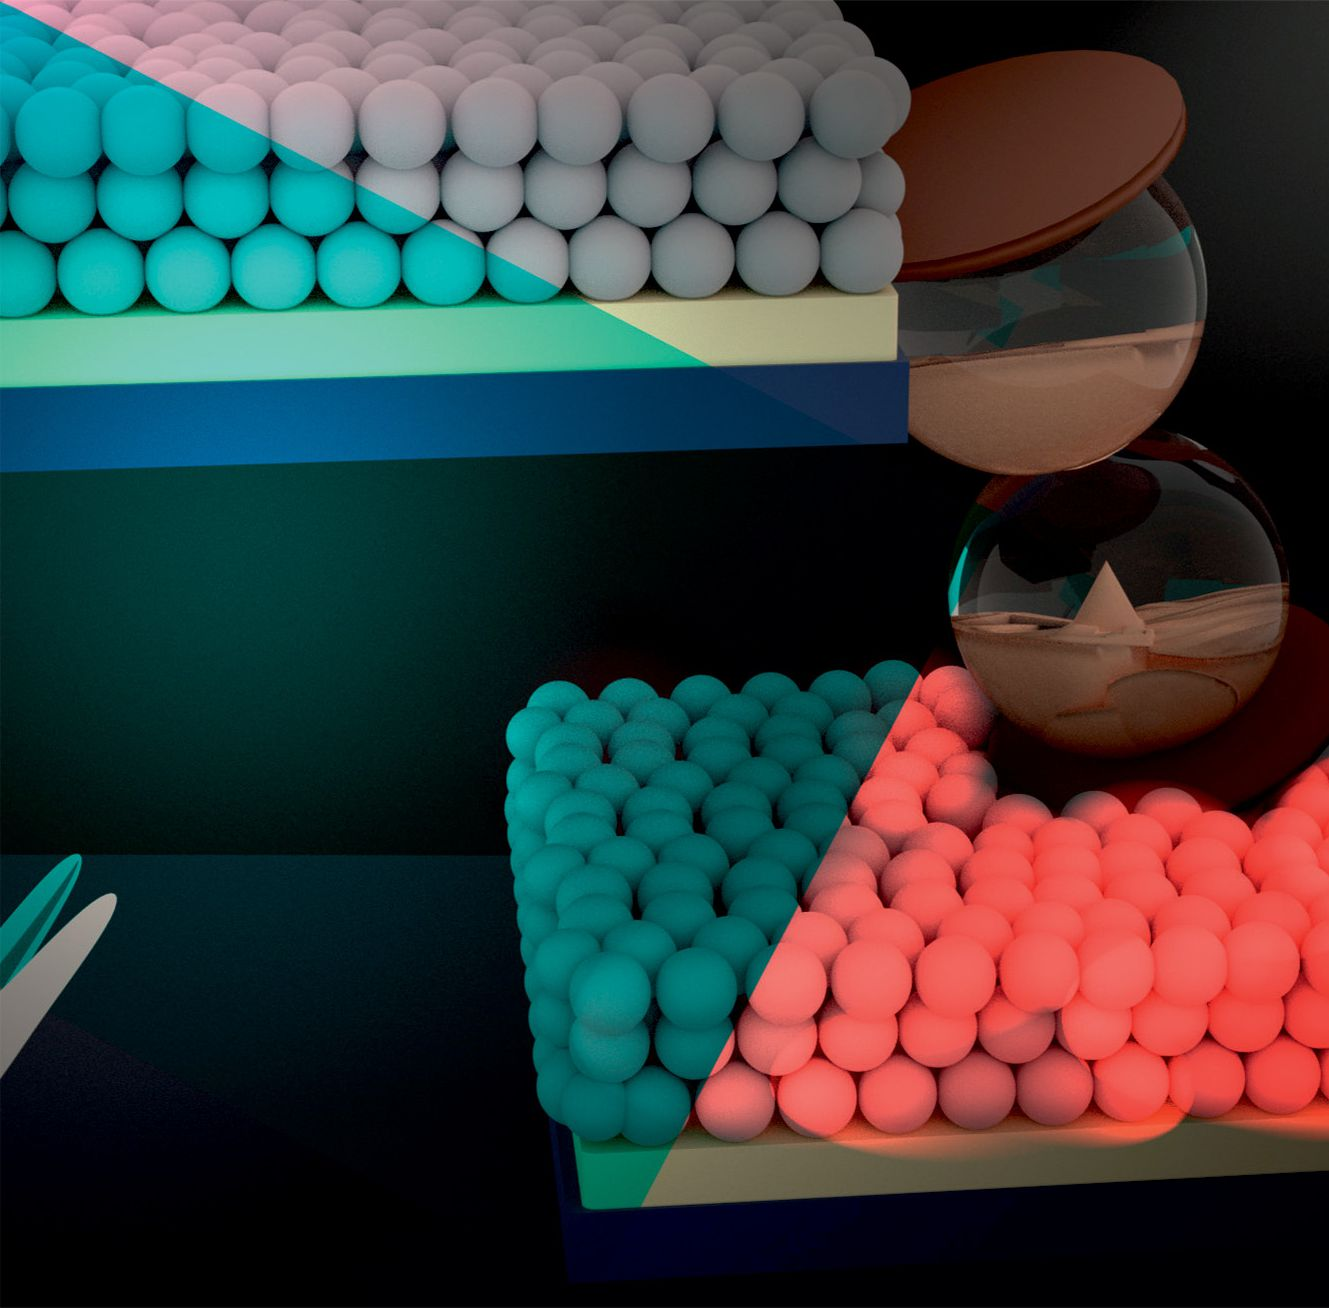 Persistent luminescence of transparent ZnGa2O4:Cr3+ thin films from colloidal nanoparticles of tunable size